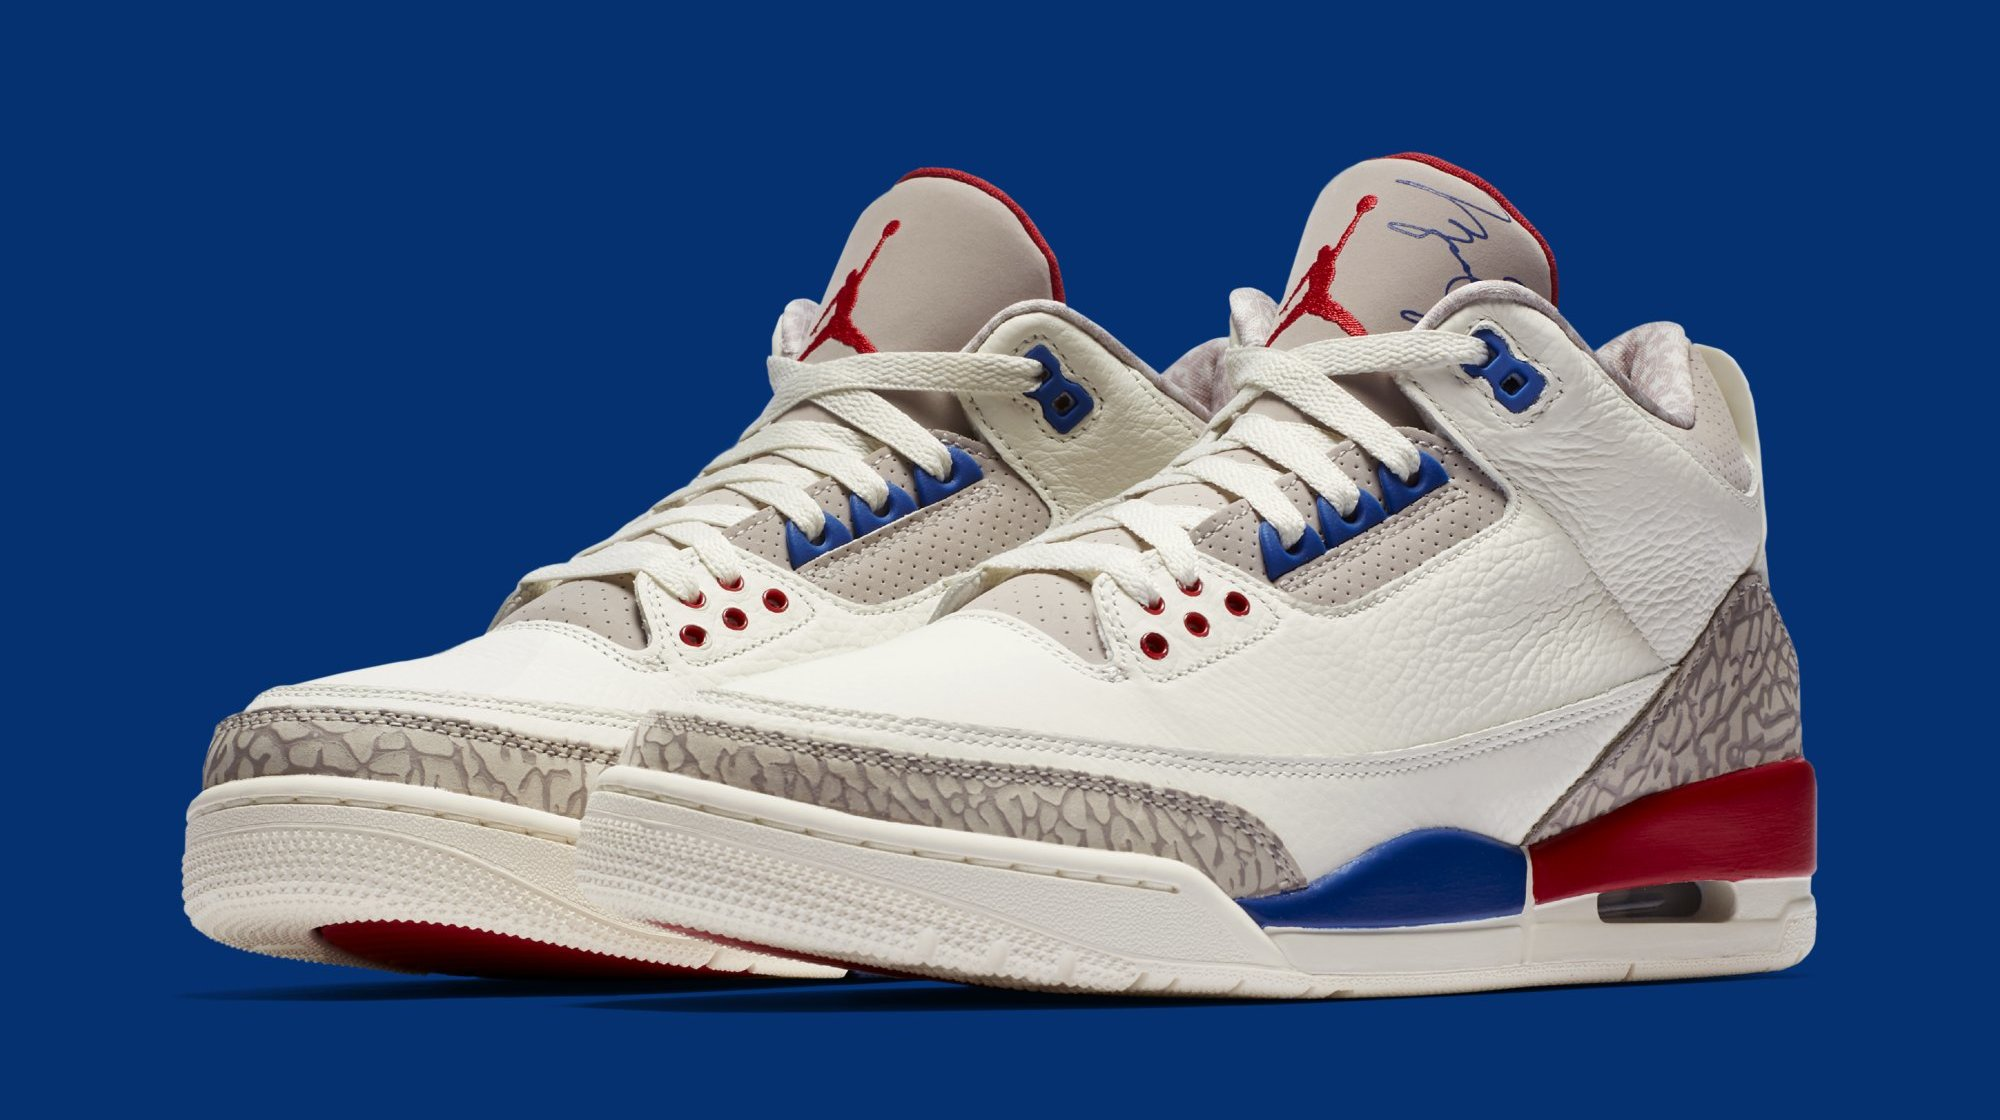 218efeb653989e Air Jordan 3 III Sail Sport Royal Fire Red Release Date 136064-140 ...